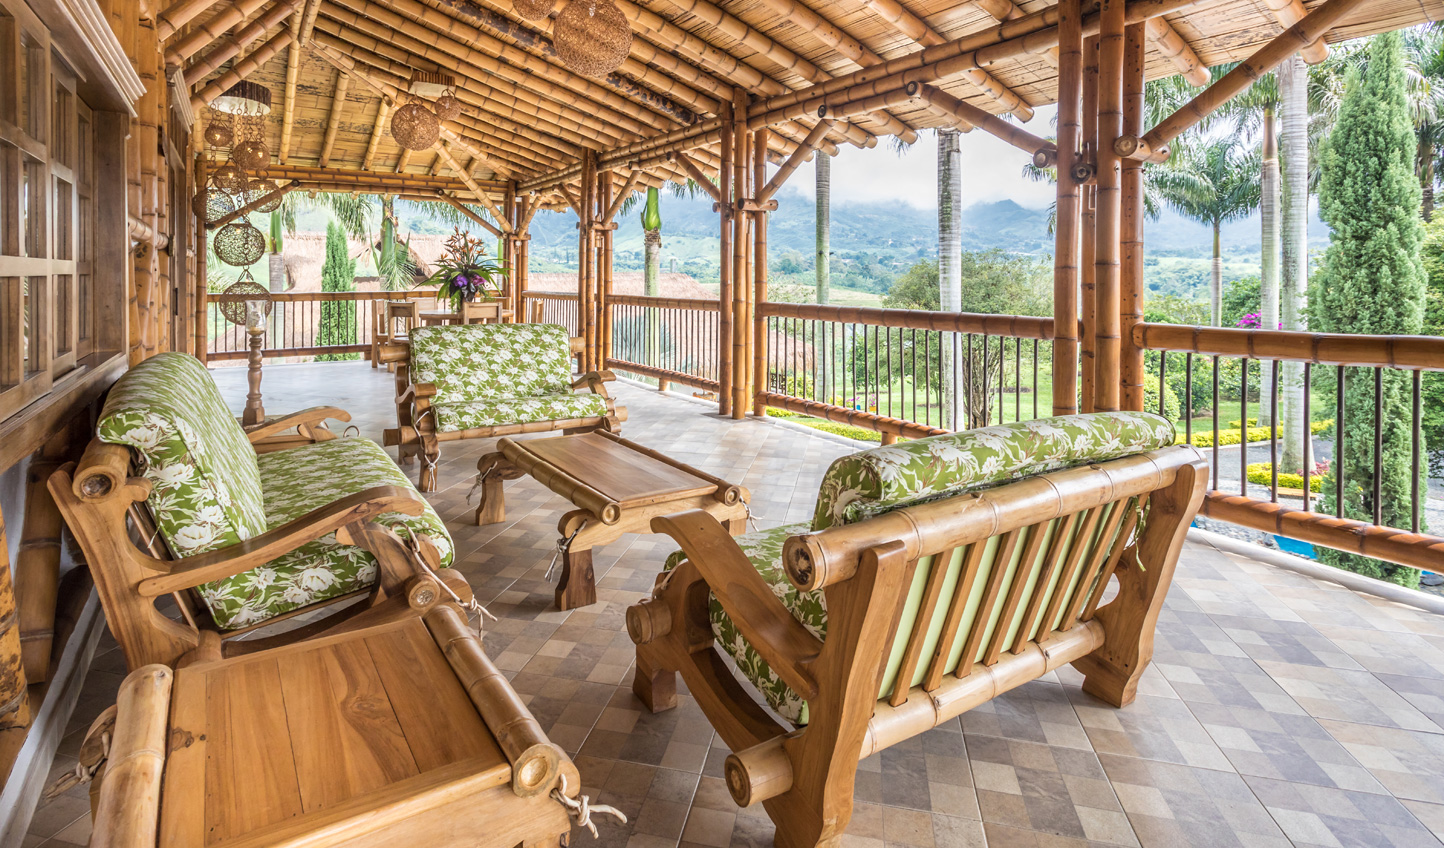 Relax in this tranquil part of Colombia famed for its coffee